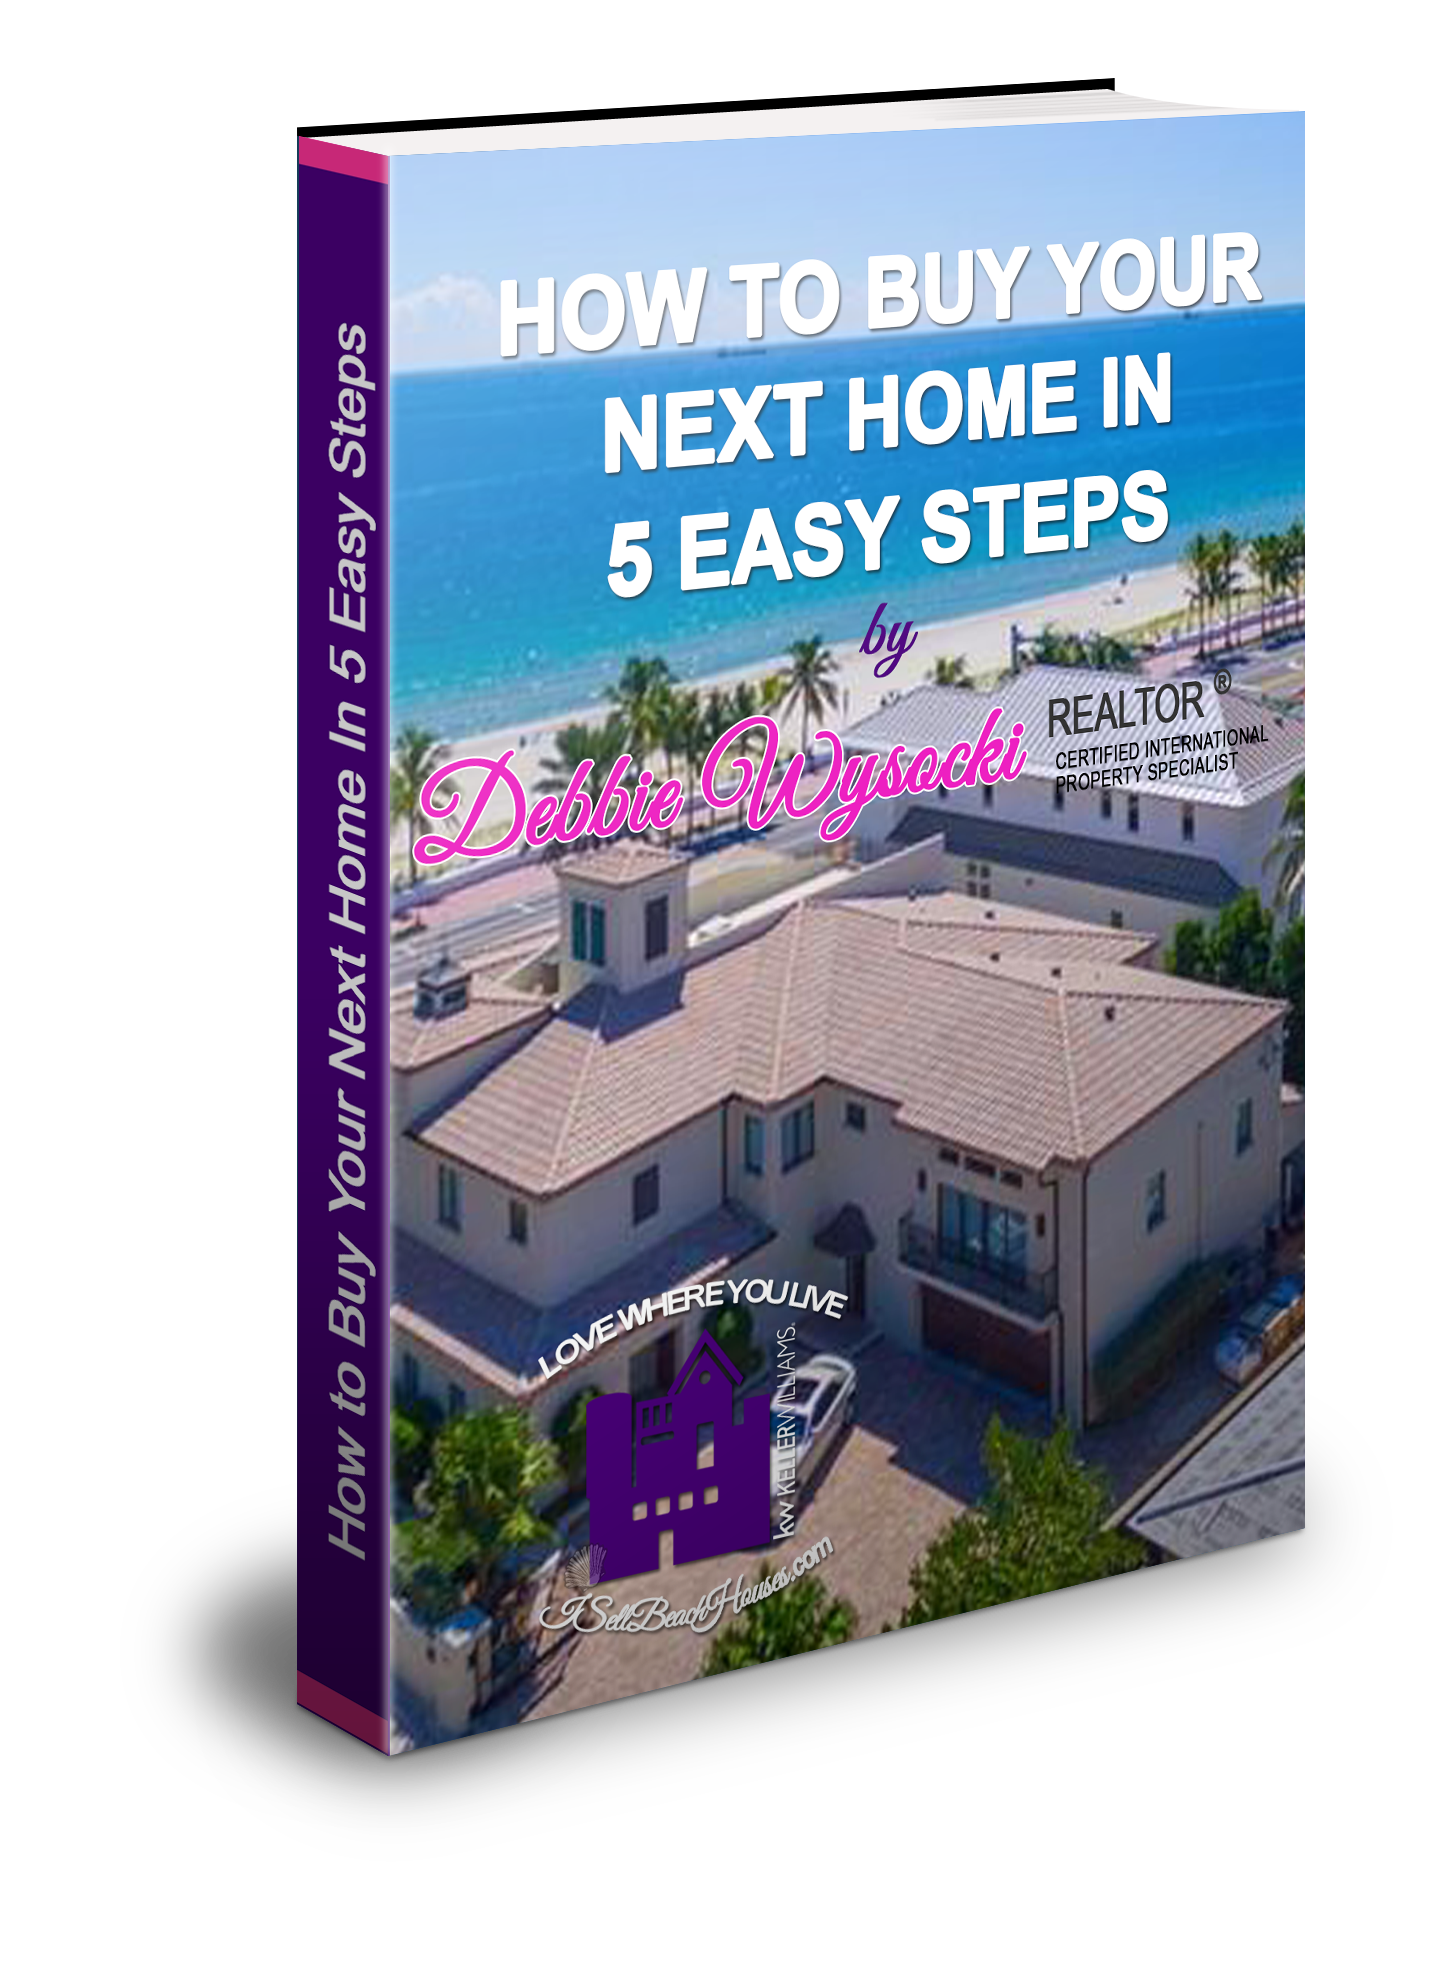 Thank You for Downloading our FREE eBook